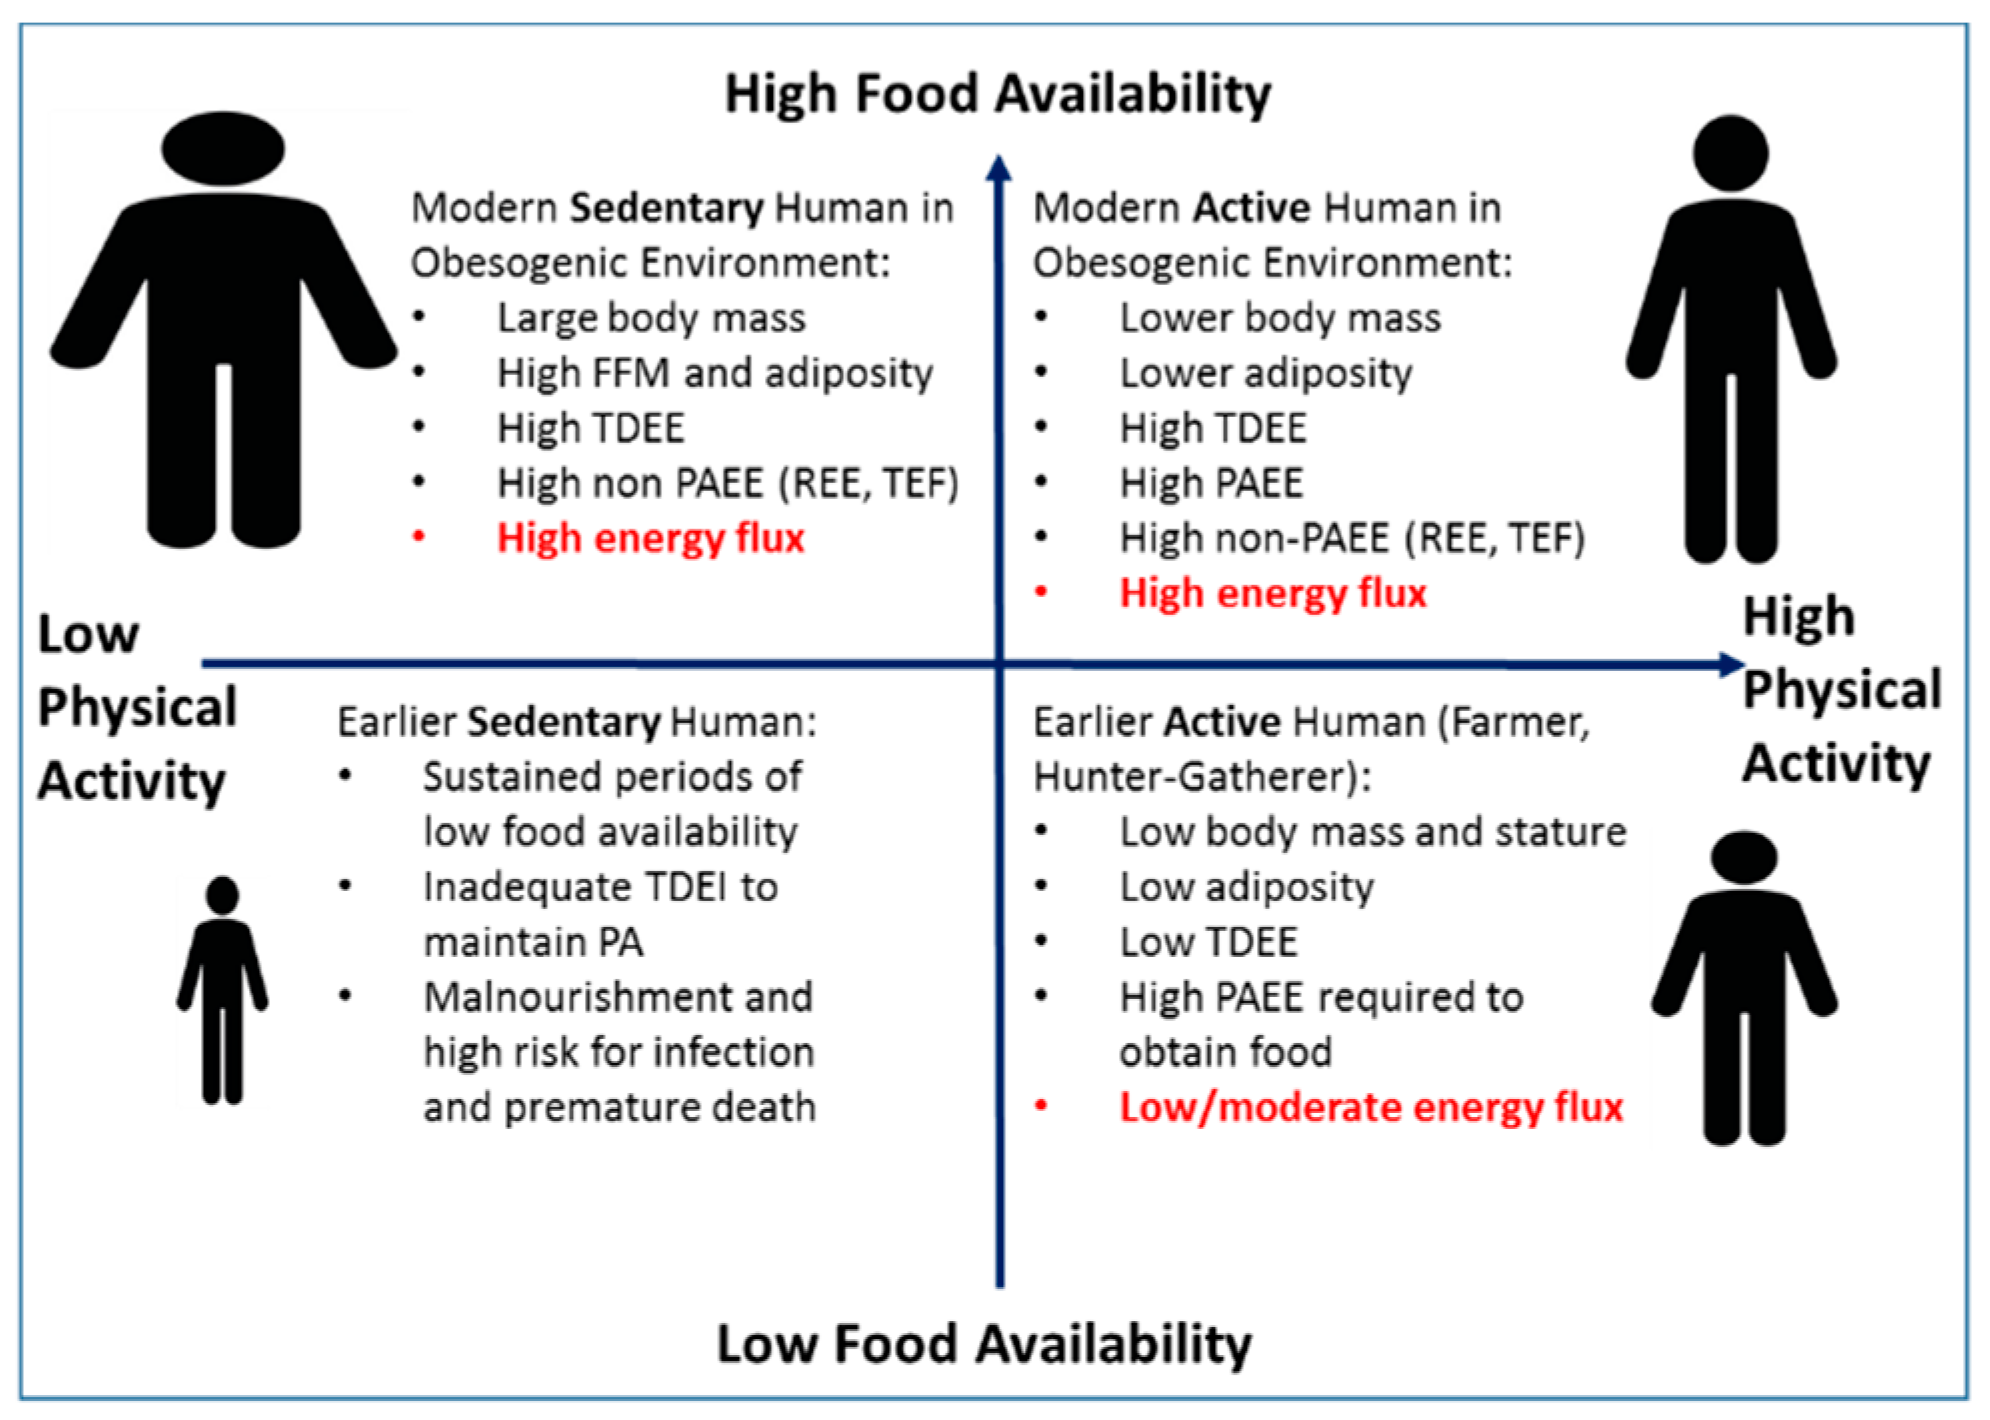 Scale of Food Availability